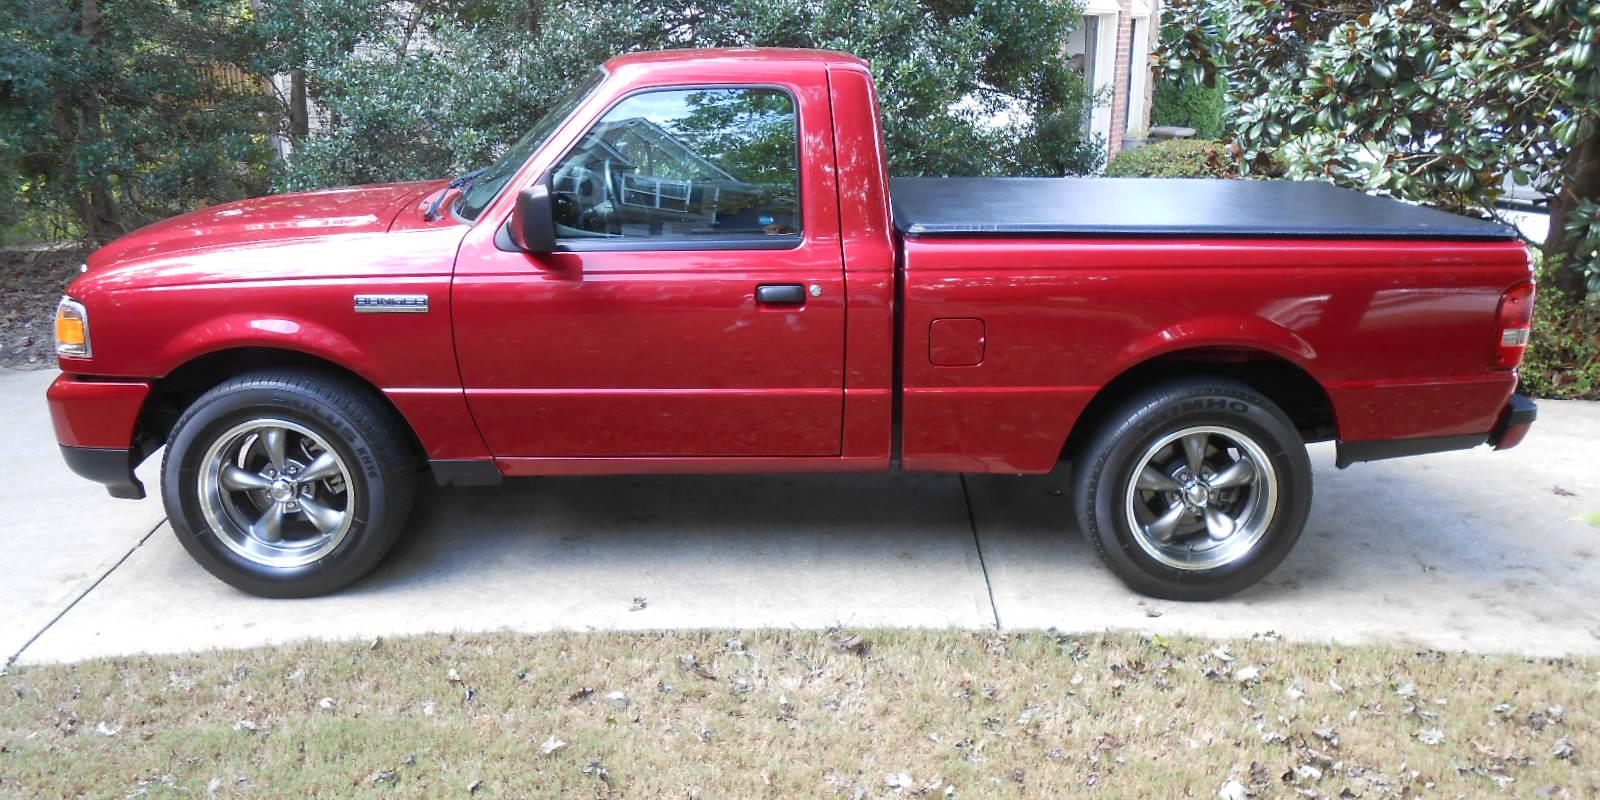 TheRentMan 2010 Ford Ranger Regular Cab